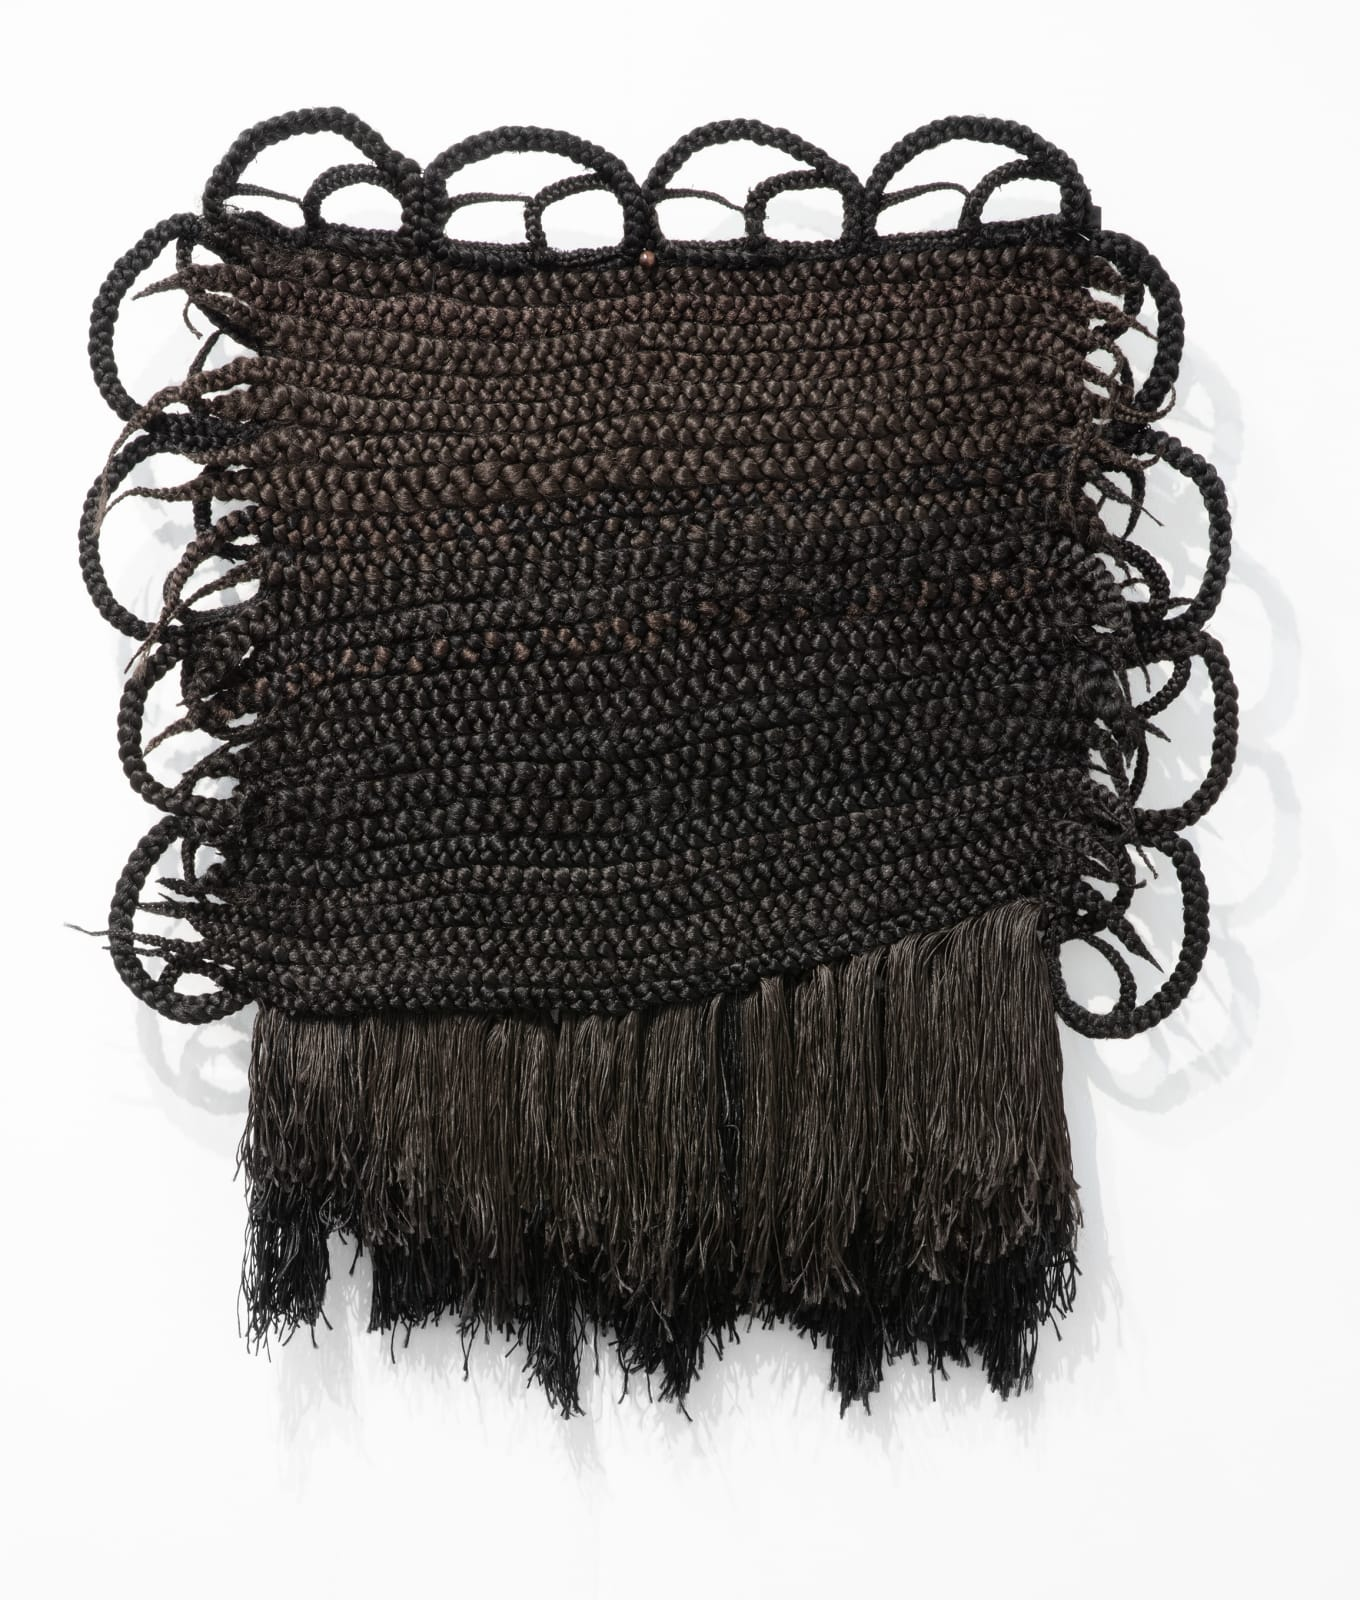 Joanne Petit-Frère Tapestry of Braids #1 (Woven while Discovering bell hooks on YouTube), 2020